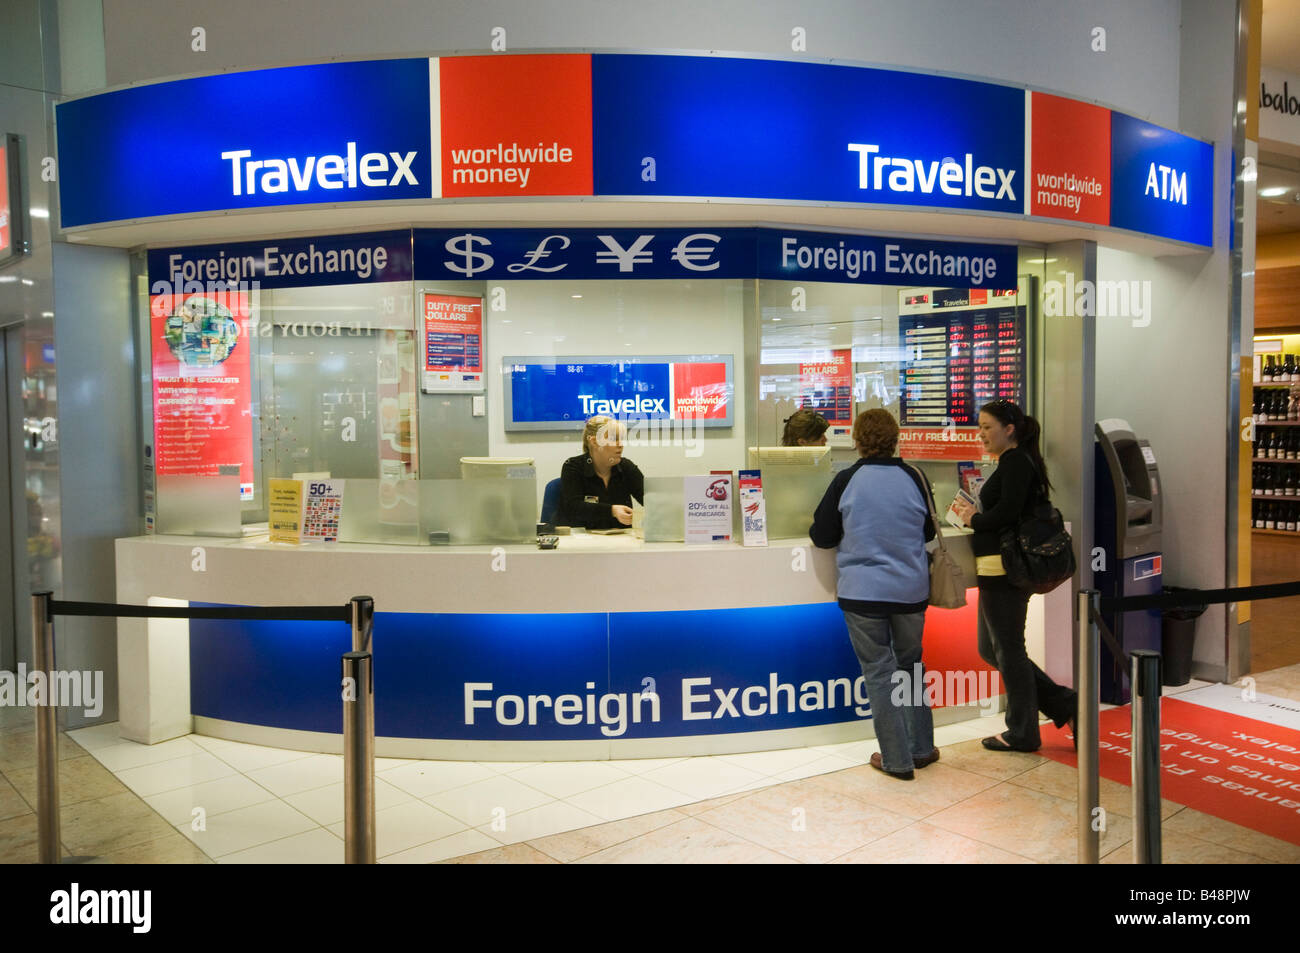 "Important information to consider before carrying out your transaction. The Multi-currency Cash Passport™ (""Cash Passport"") and Cash Passport™ Platinum MasterCard® (""Cash Passport Platinum"") are unsecured debt securities issued by Travelex Card Services Limited, a member of the Travelex ."